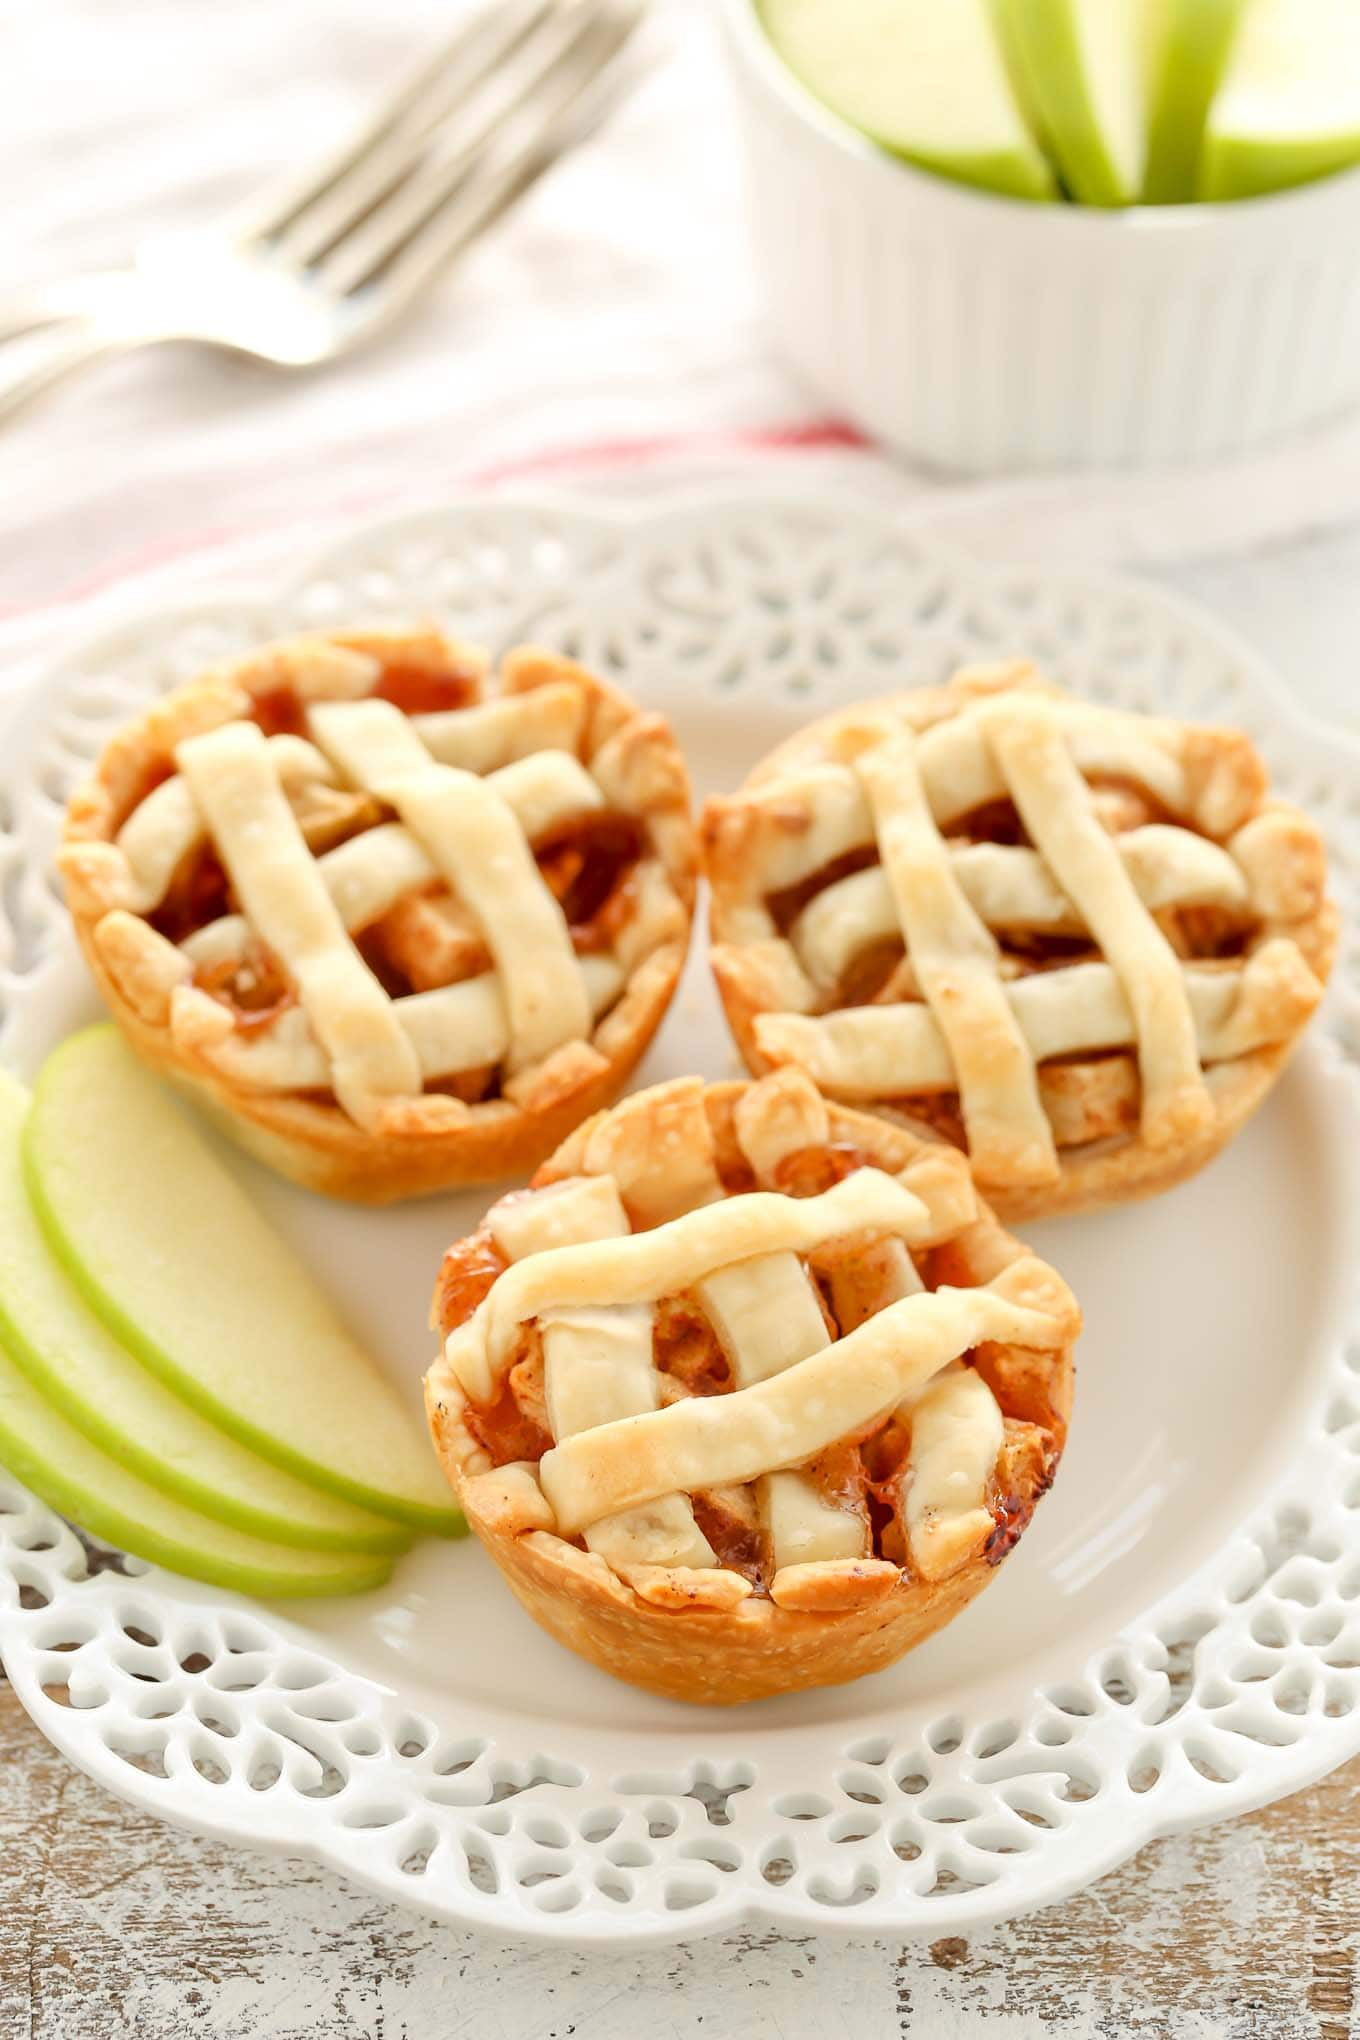 Apple Pie - simple recipes for an apple pie in the oven with photos 92